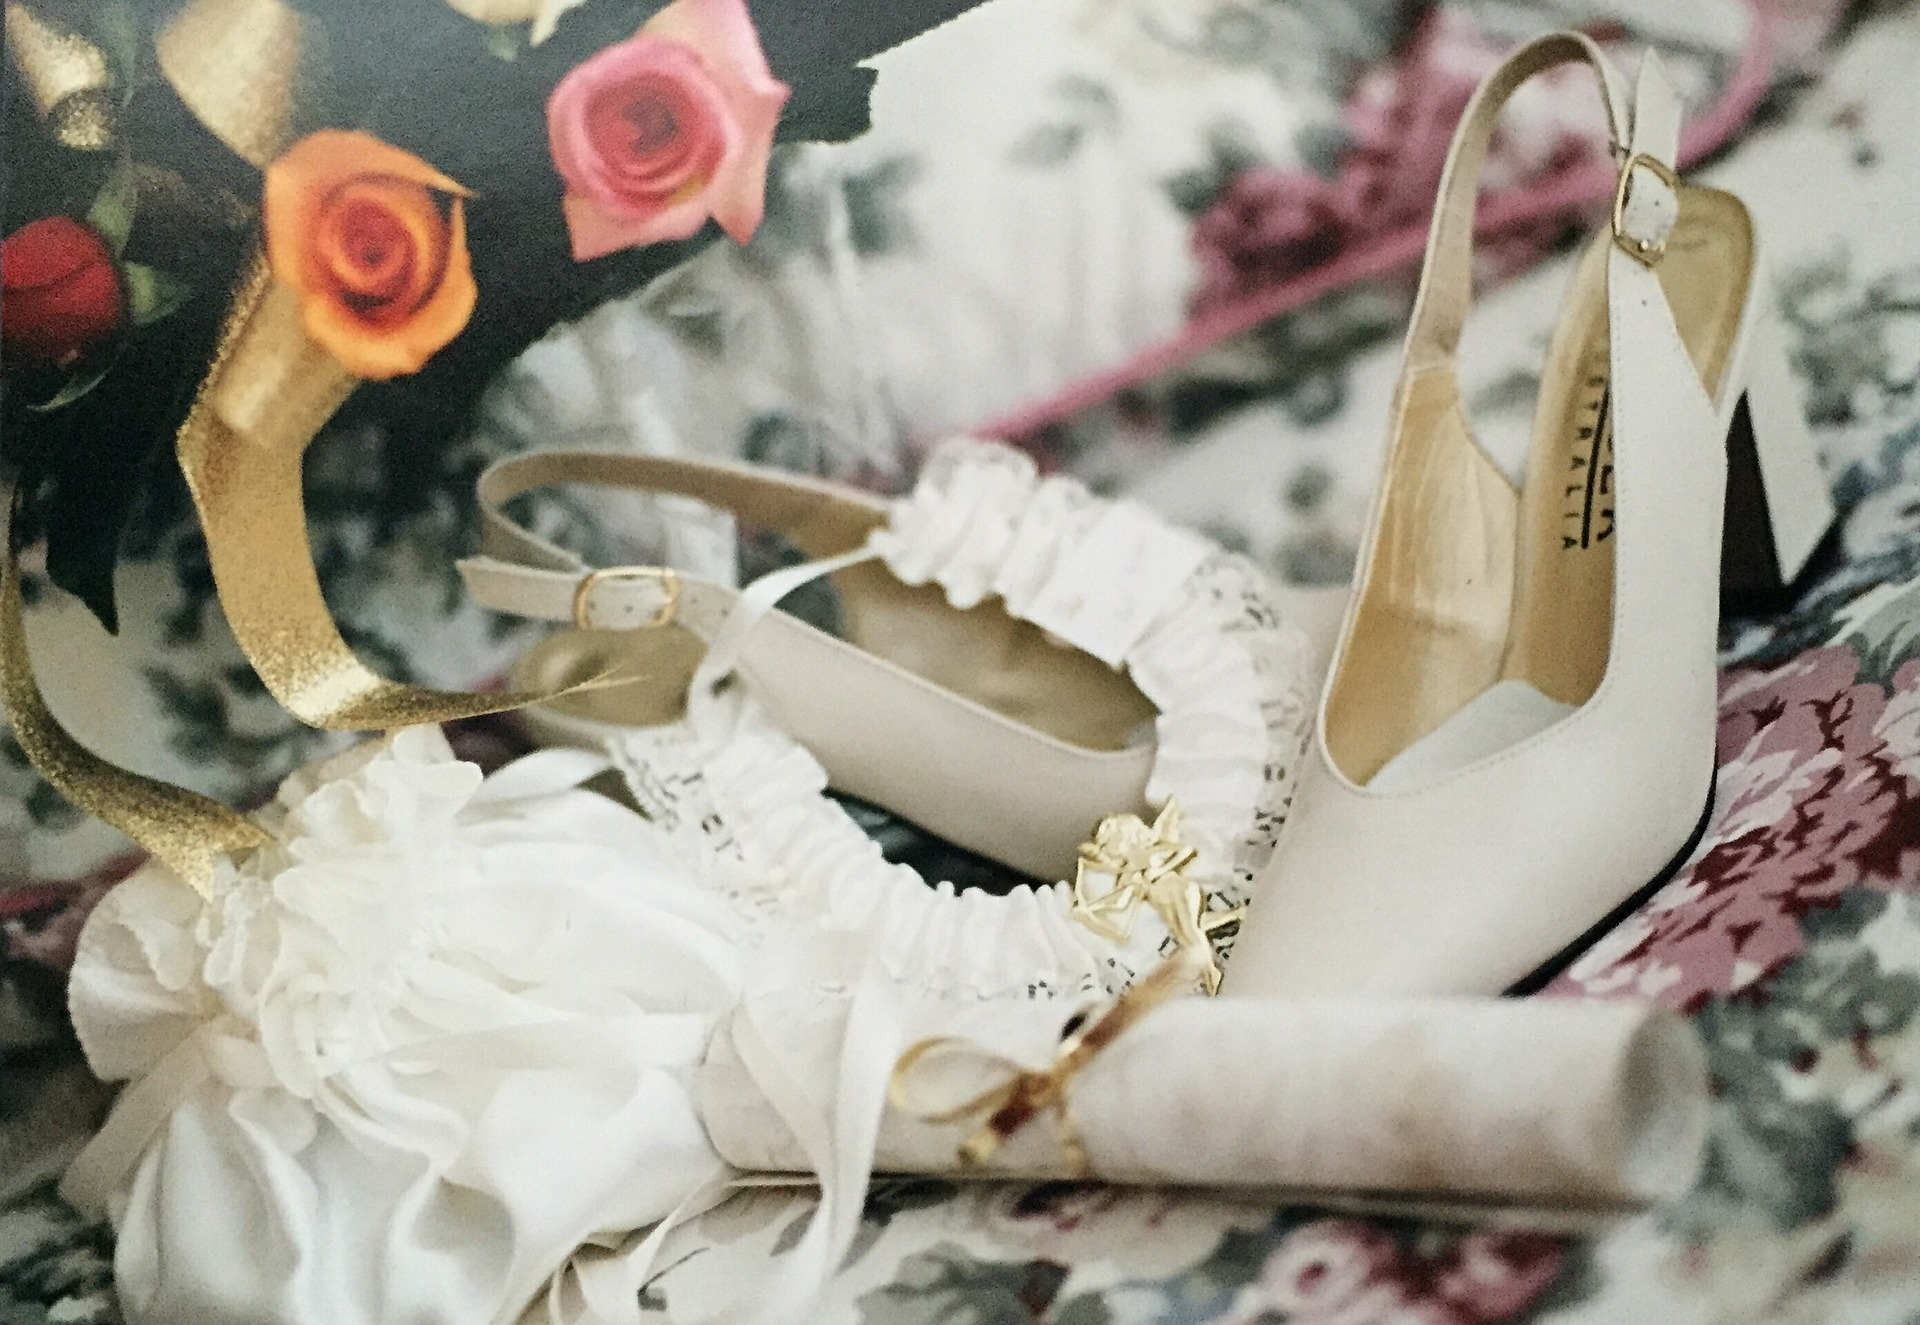 HOW TO STAY CALM BEFORE THE WEDDING: NO COLD FEET